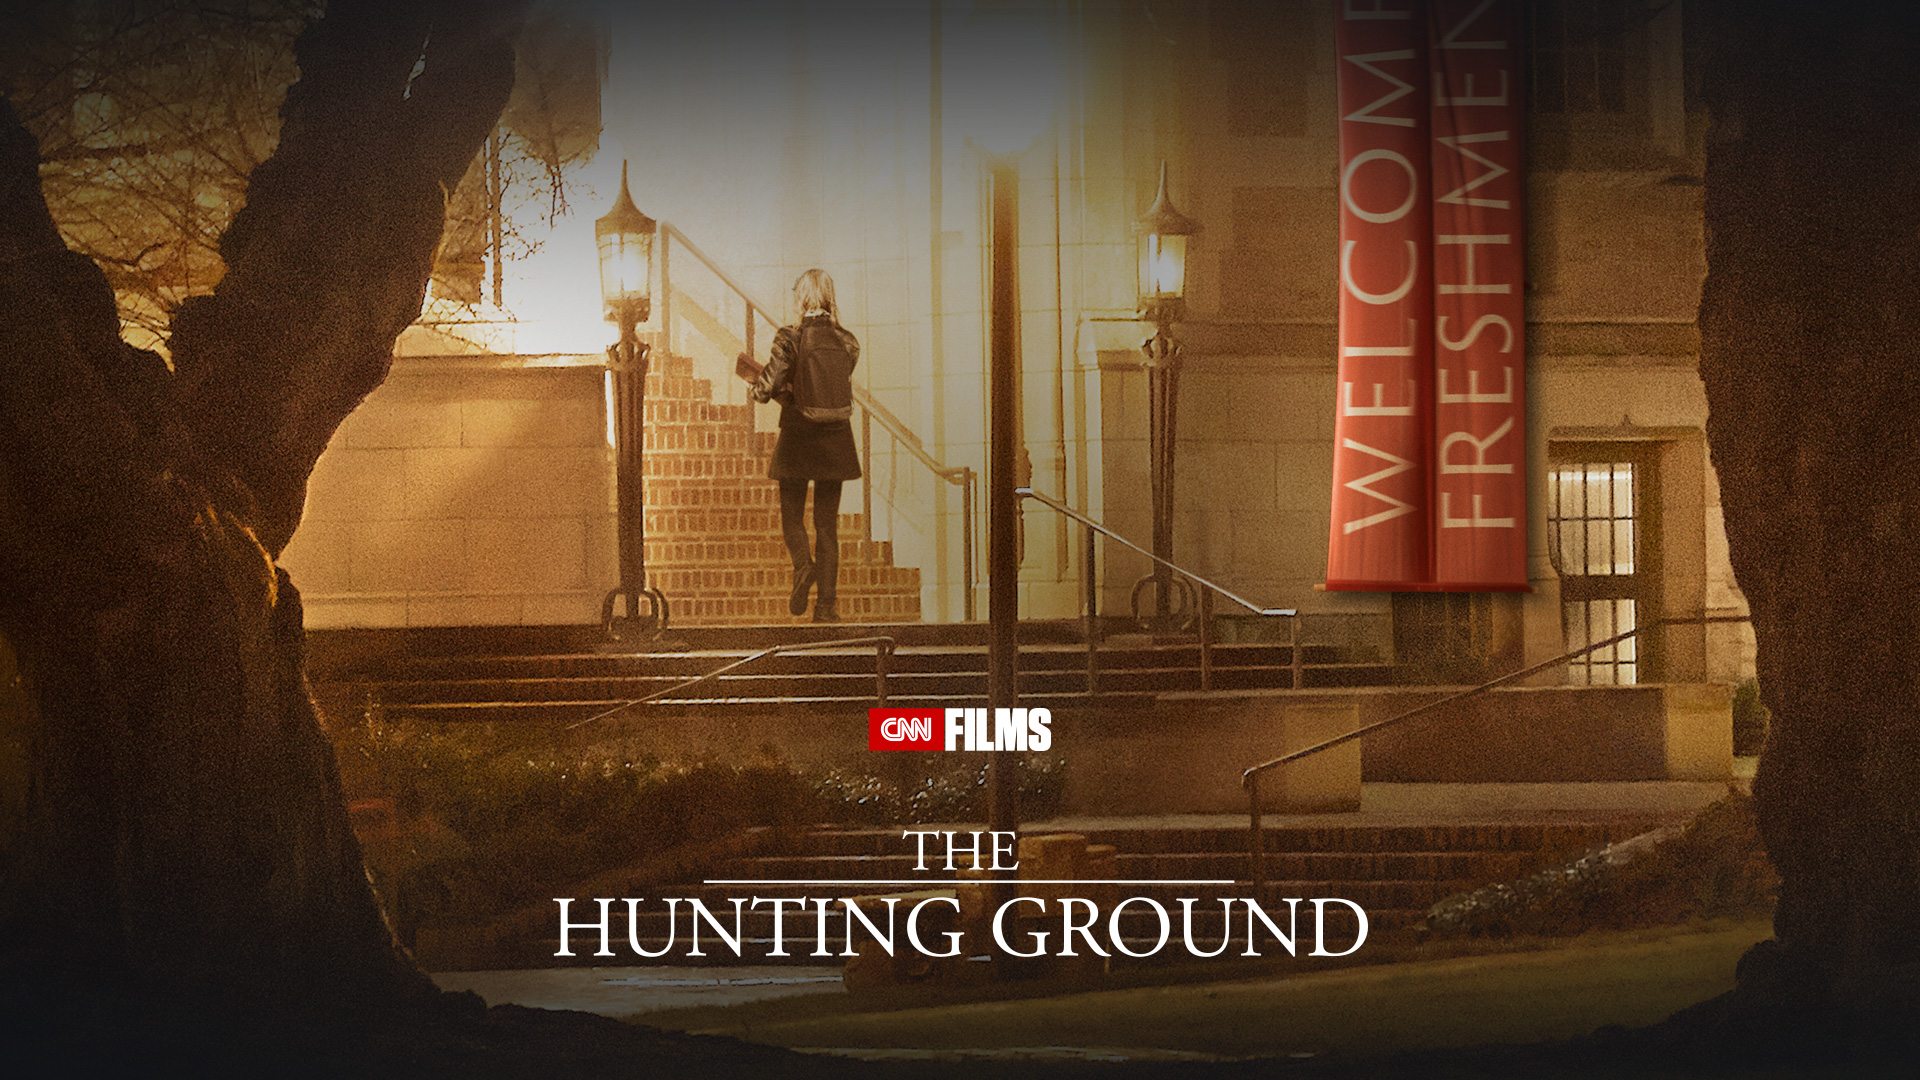 THE HUNTING GROUND Premieres on CNN in November